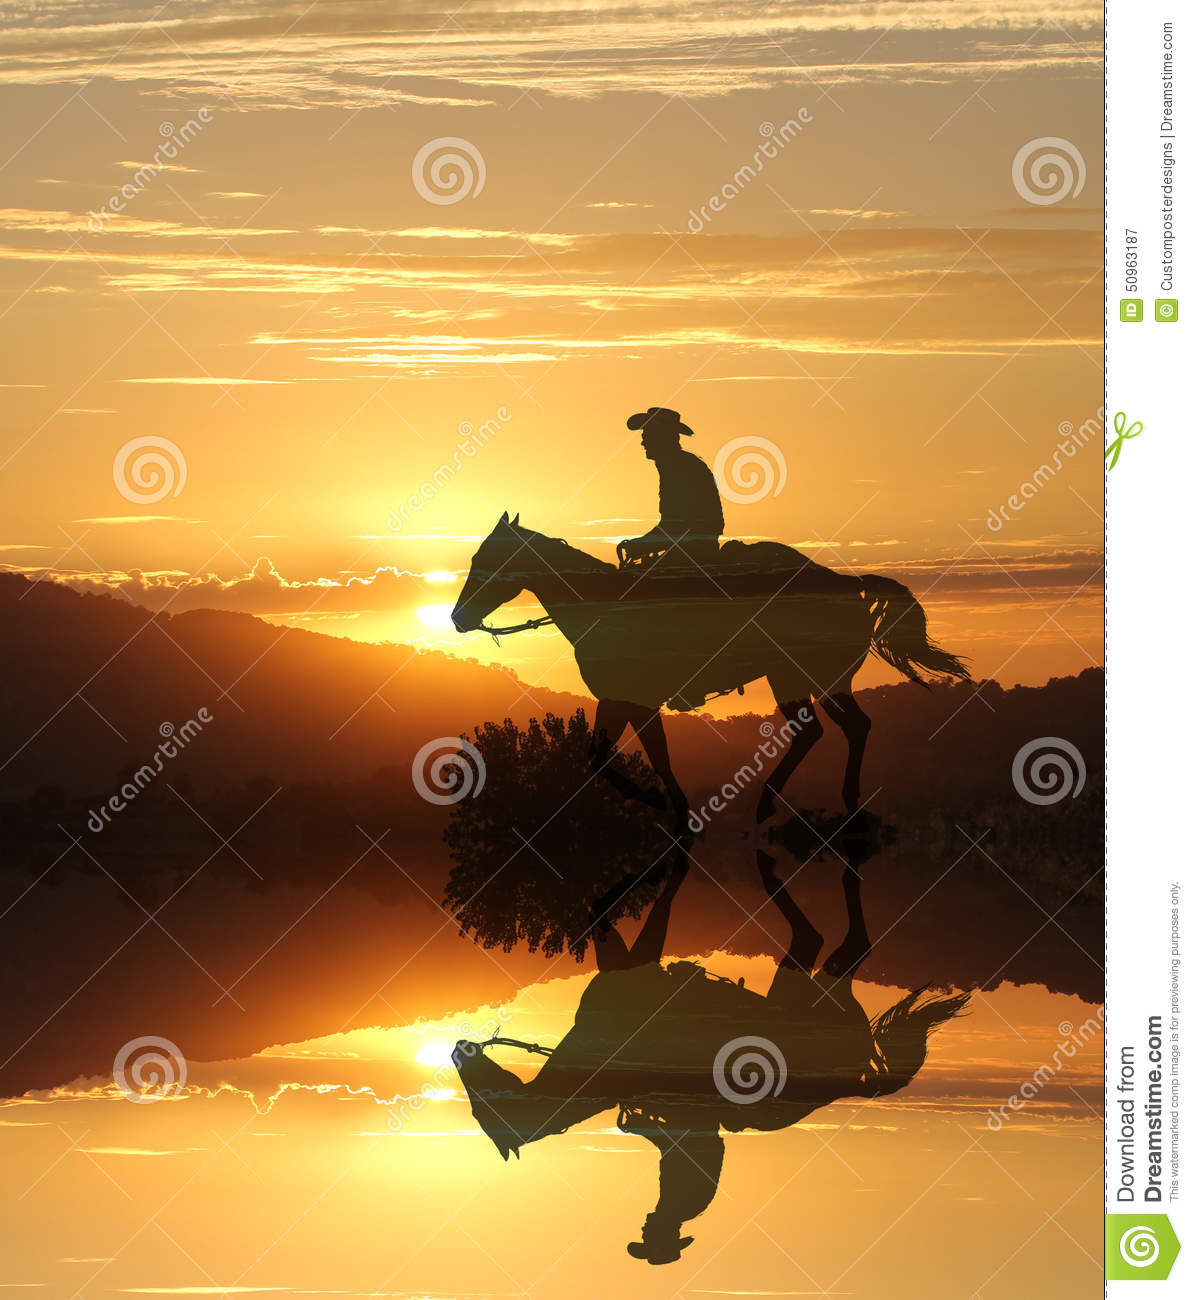 Download Sunset Cowboy By A Lake In The Mountains. Stock Image - Image of horse, range: 50963187